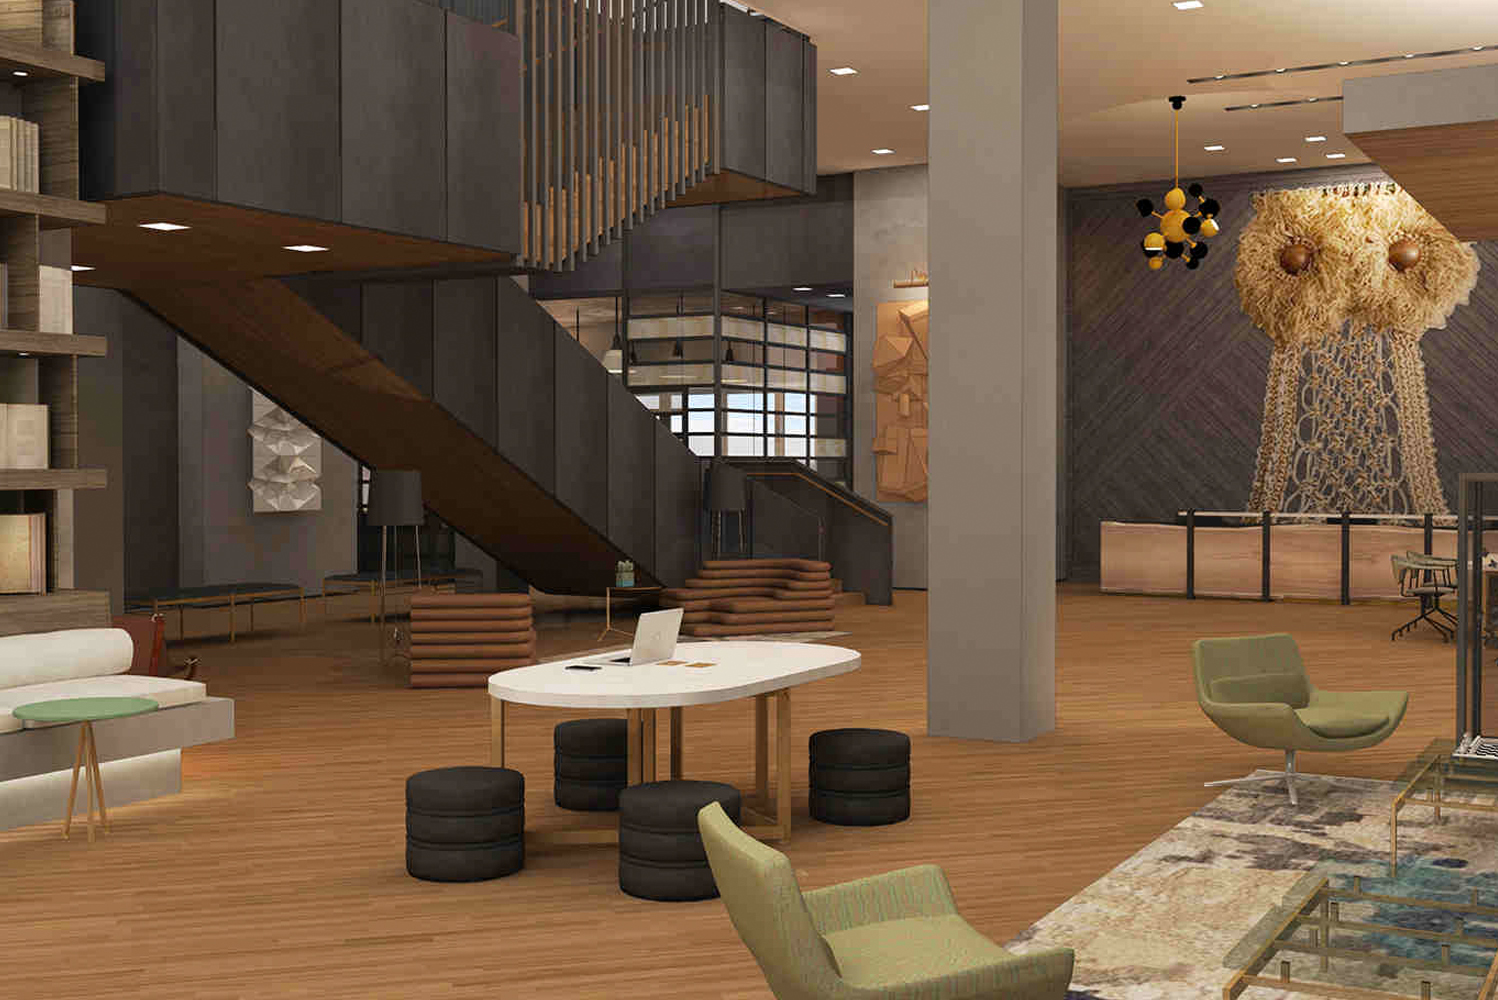 Powerstrip studio helps design kimpton s first project in for Palm springs strip hotels